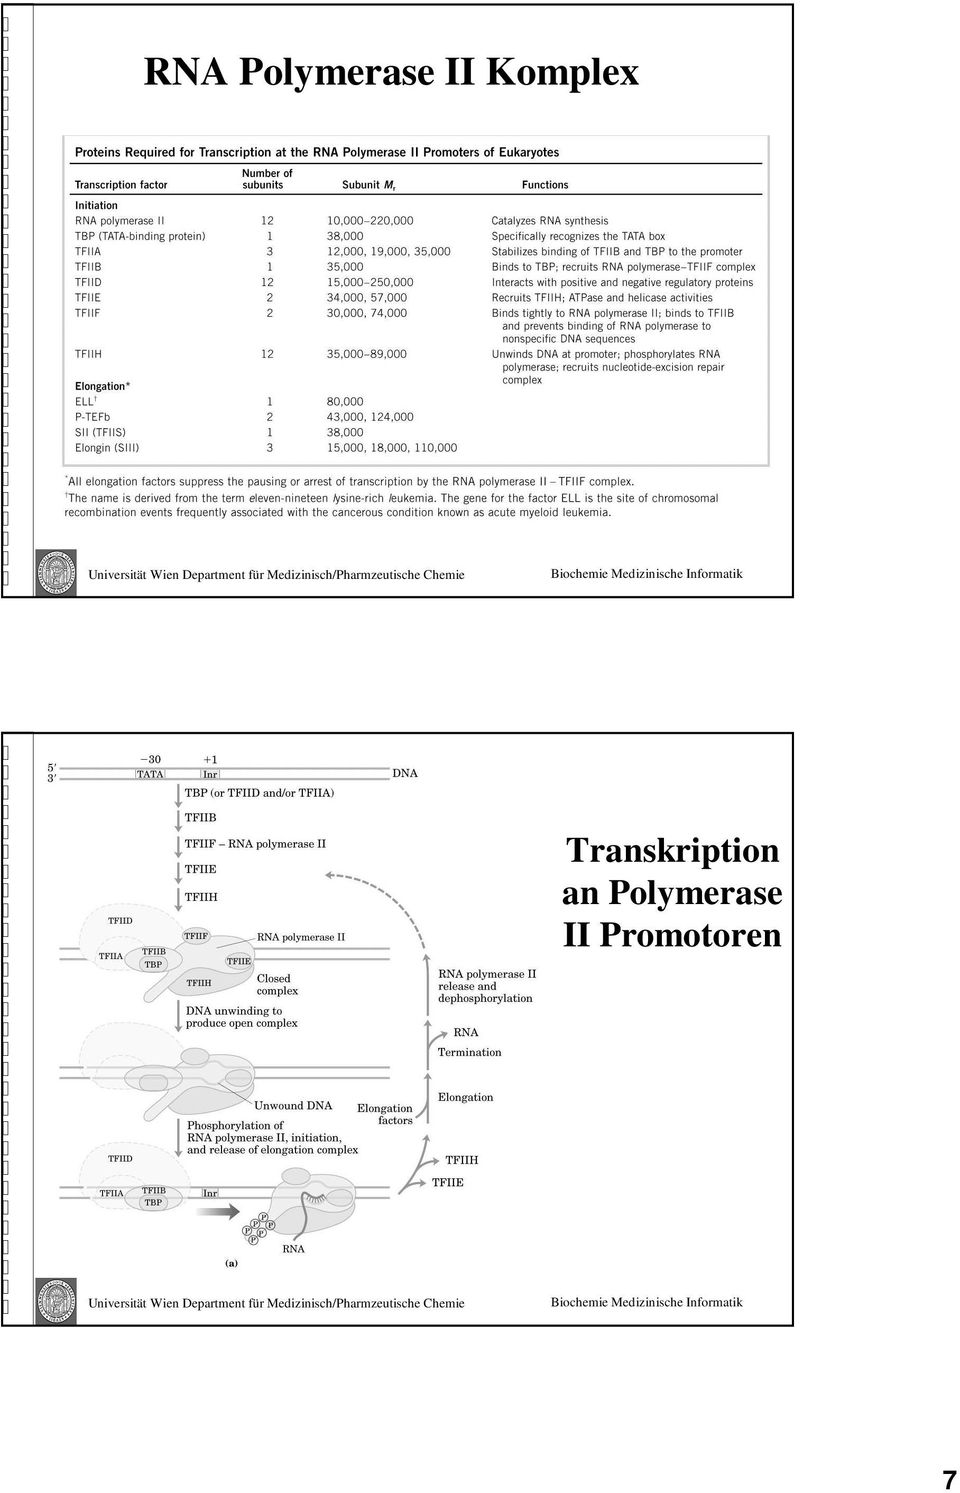 Transkription an